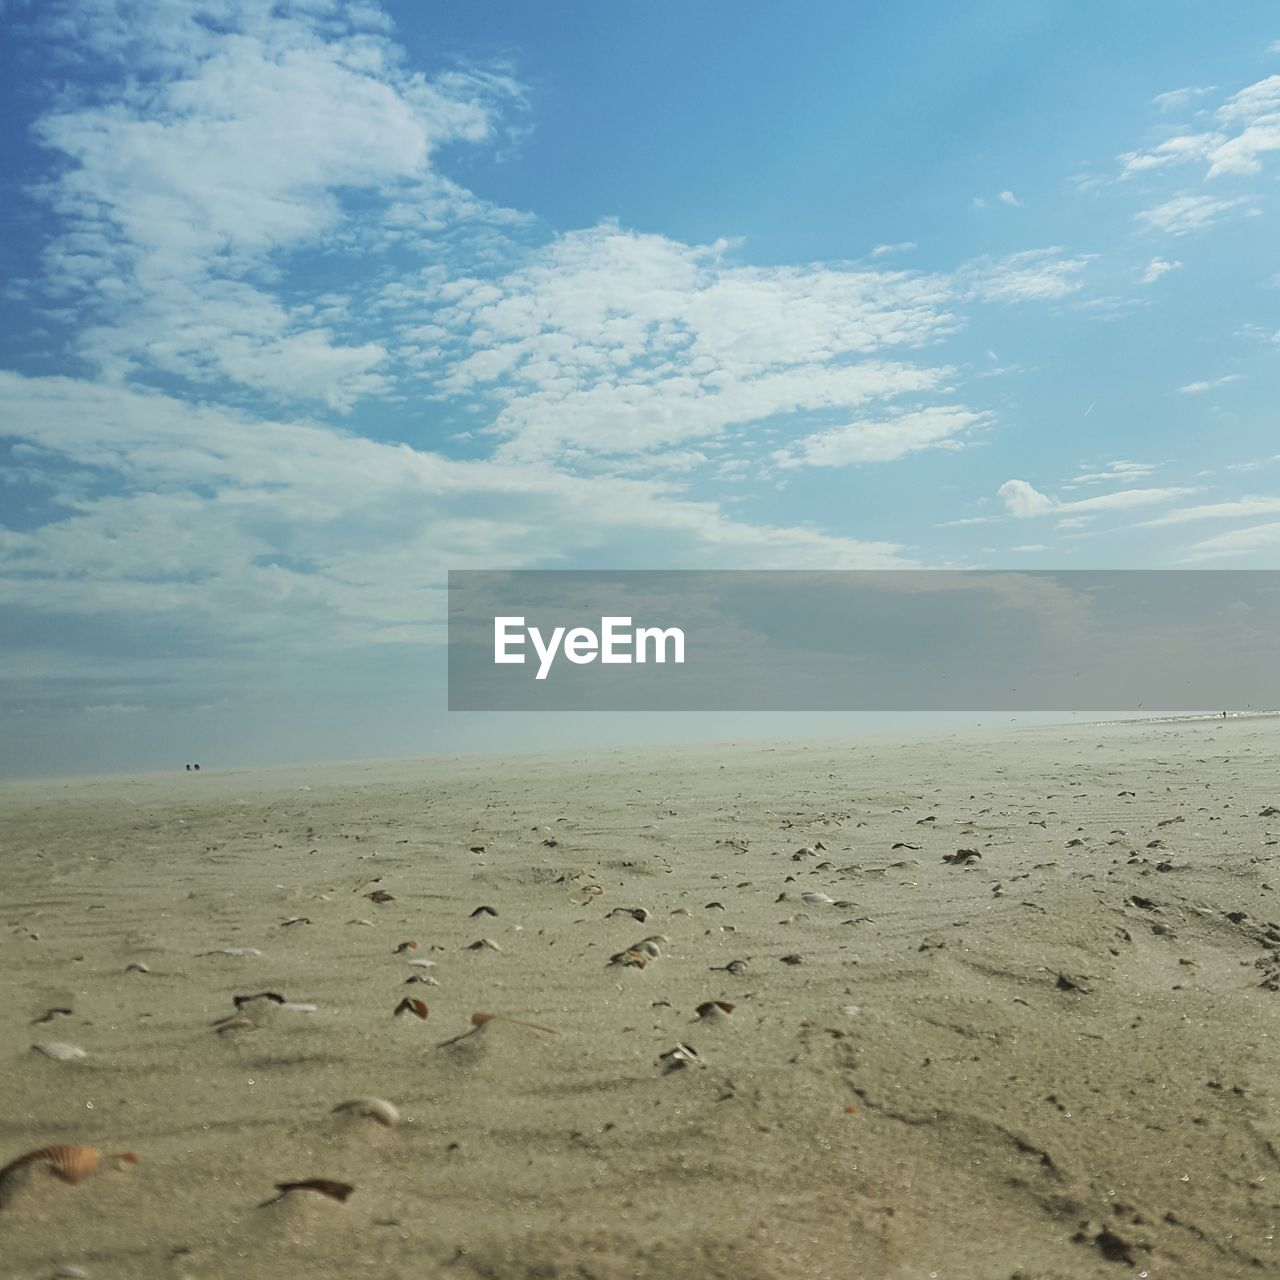 sky, nature, sand, cloud - sky, tranquility, day, landscape, scenics, no people, tranquil scene, beauty in nature, outdoors, beach, arid climate